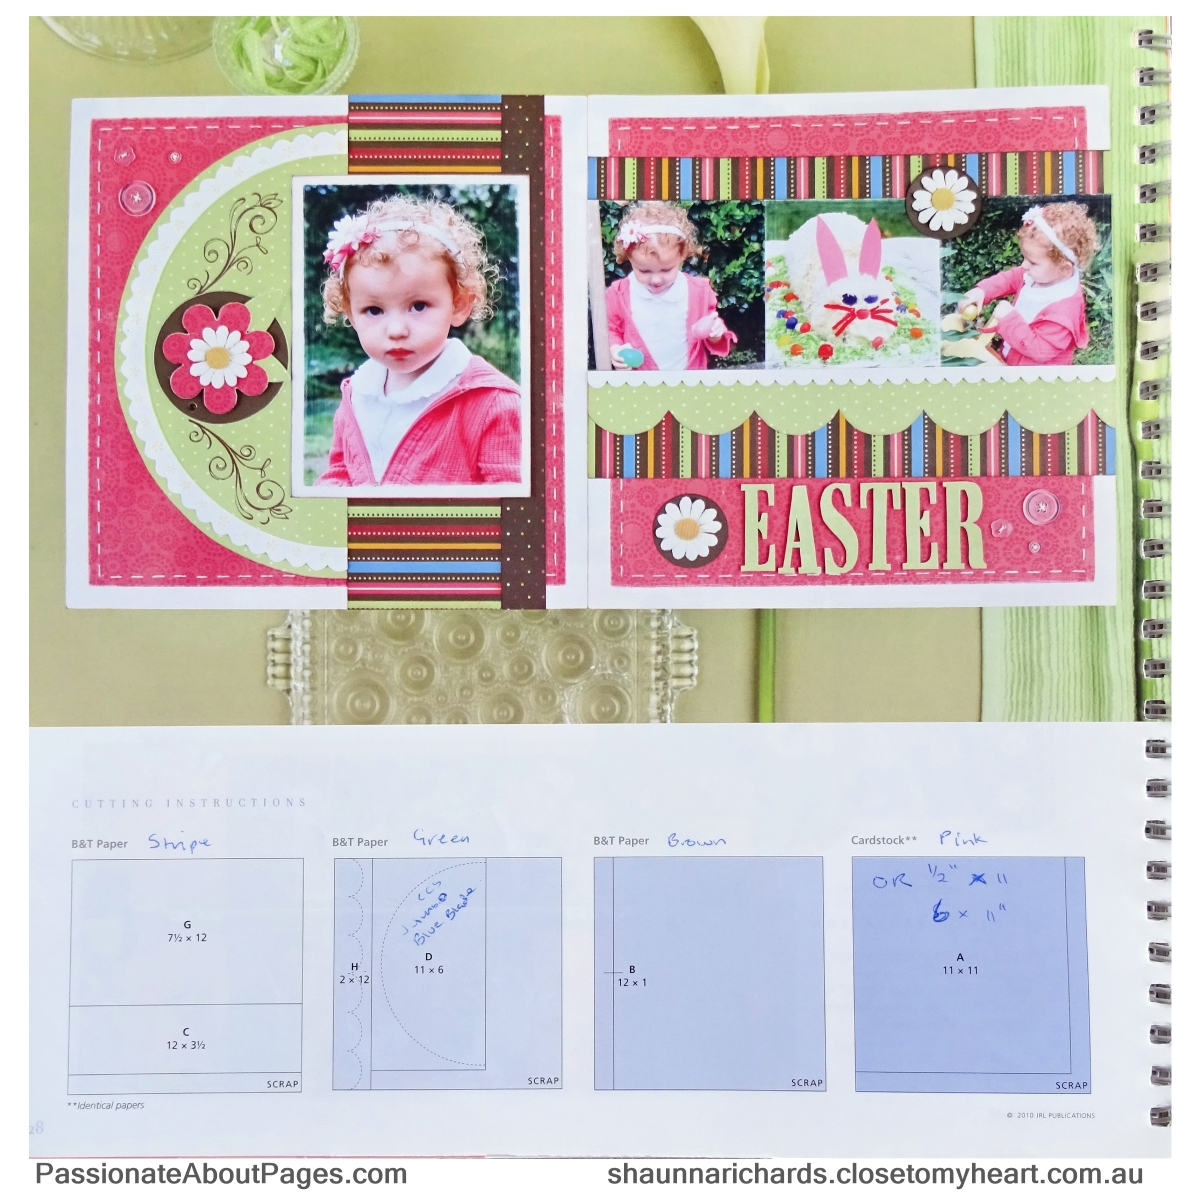 The Close To My Heart 'Magic' Idea Book is filled with awesome layout ideas, cutting and placement guides.